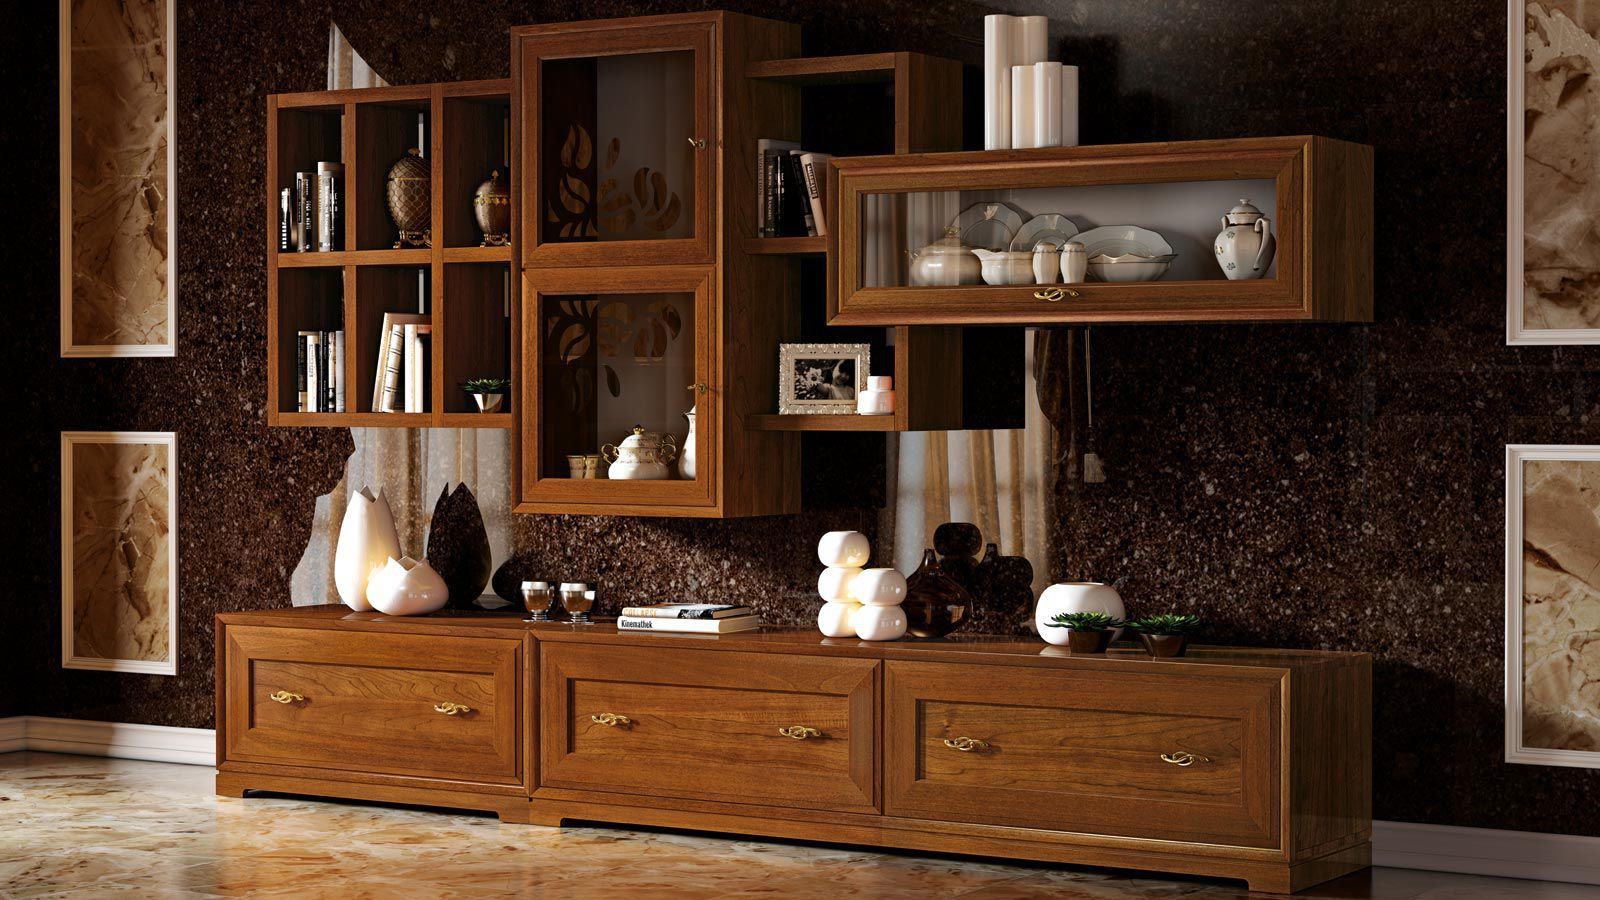 Living Room China Cabinet Contemporary Living Room Wall Unit Wooden La Dolce Vita Stilema